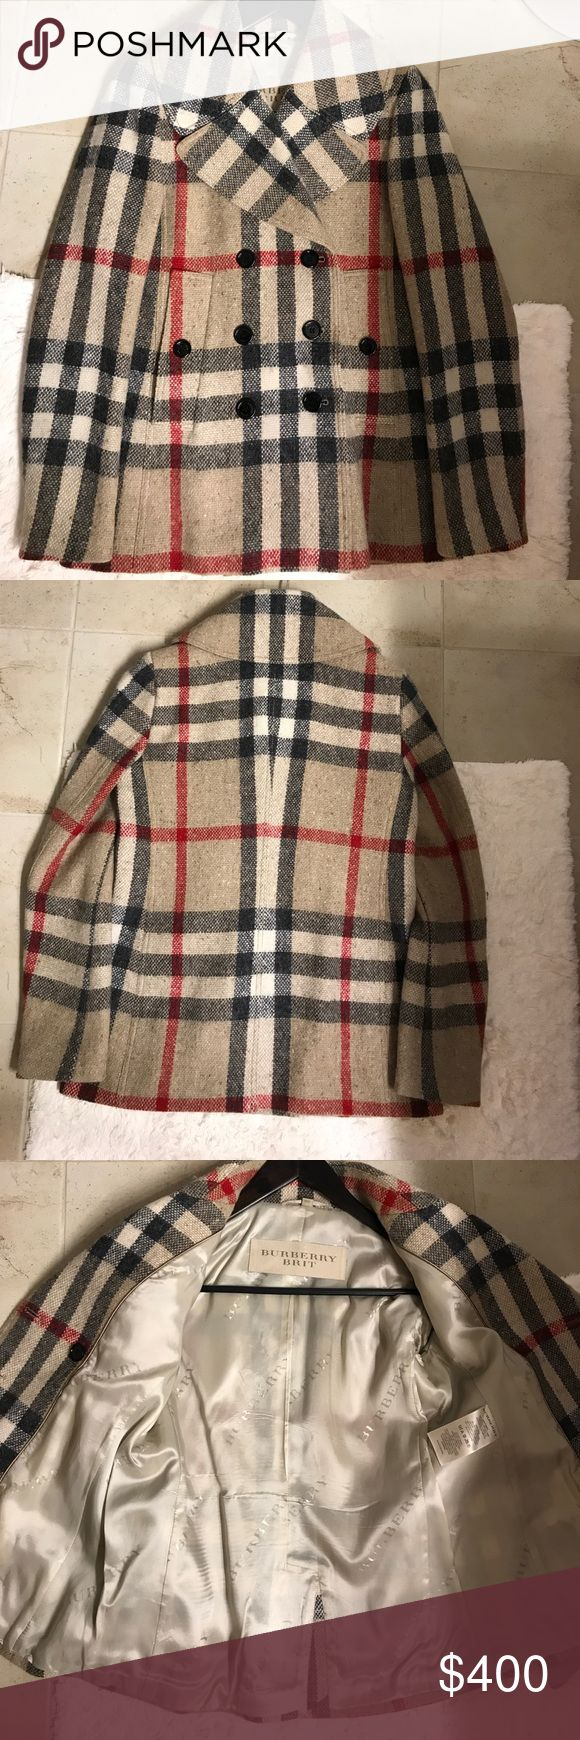 Burberry Women's Peacoat Size 8 Excellent condition.  Front pockets, back vent, double breasted, non smoke home. Burberry Jackets & Coats Pea Coats